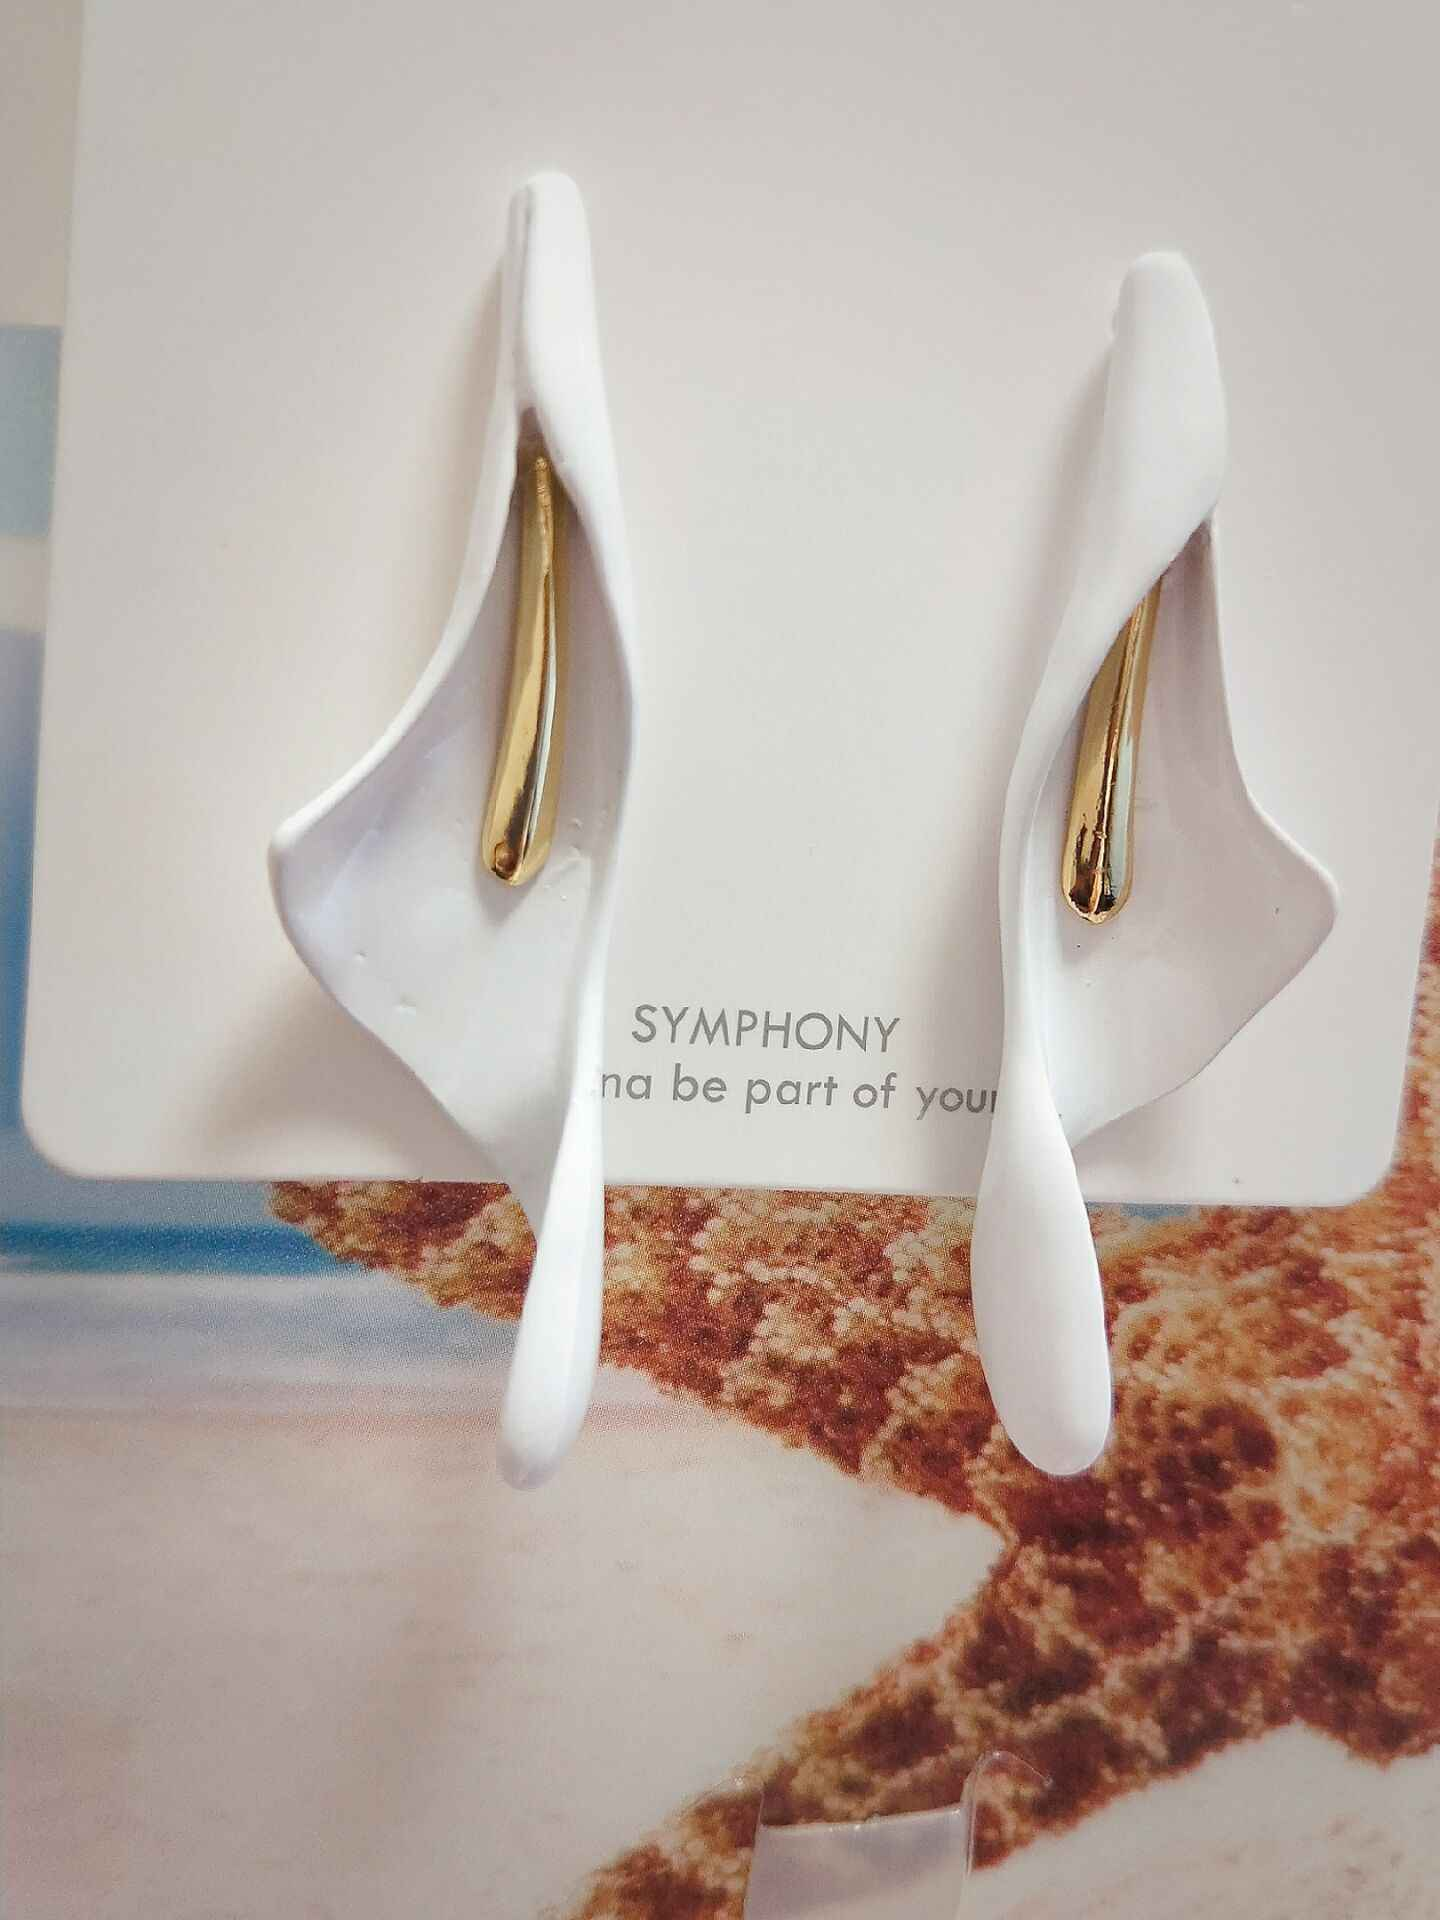 New Classic White Imitation Ceramic Calla Lily flower Drop Earrings Fashion Wedding Bride korean Jewelry For Women girls Gifts